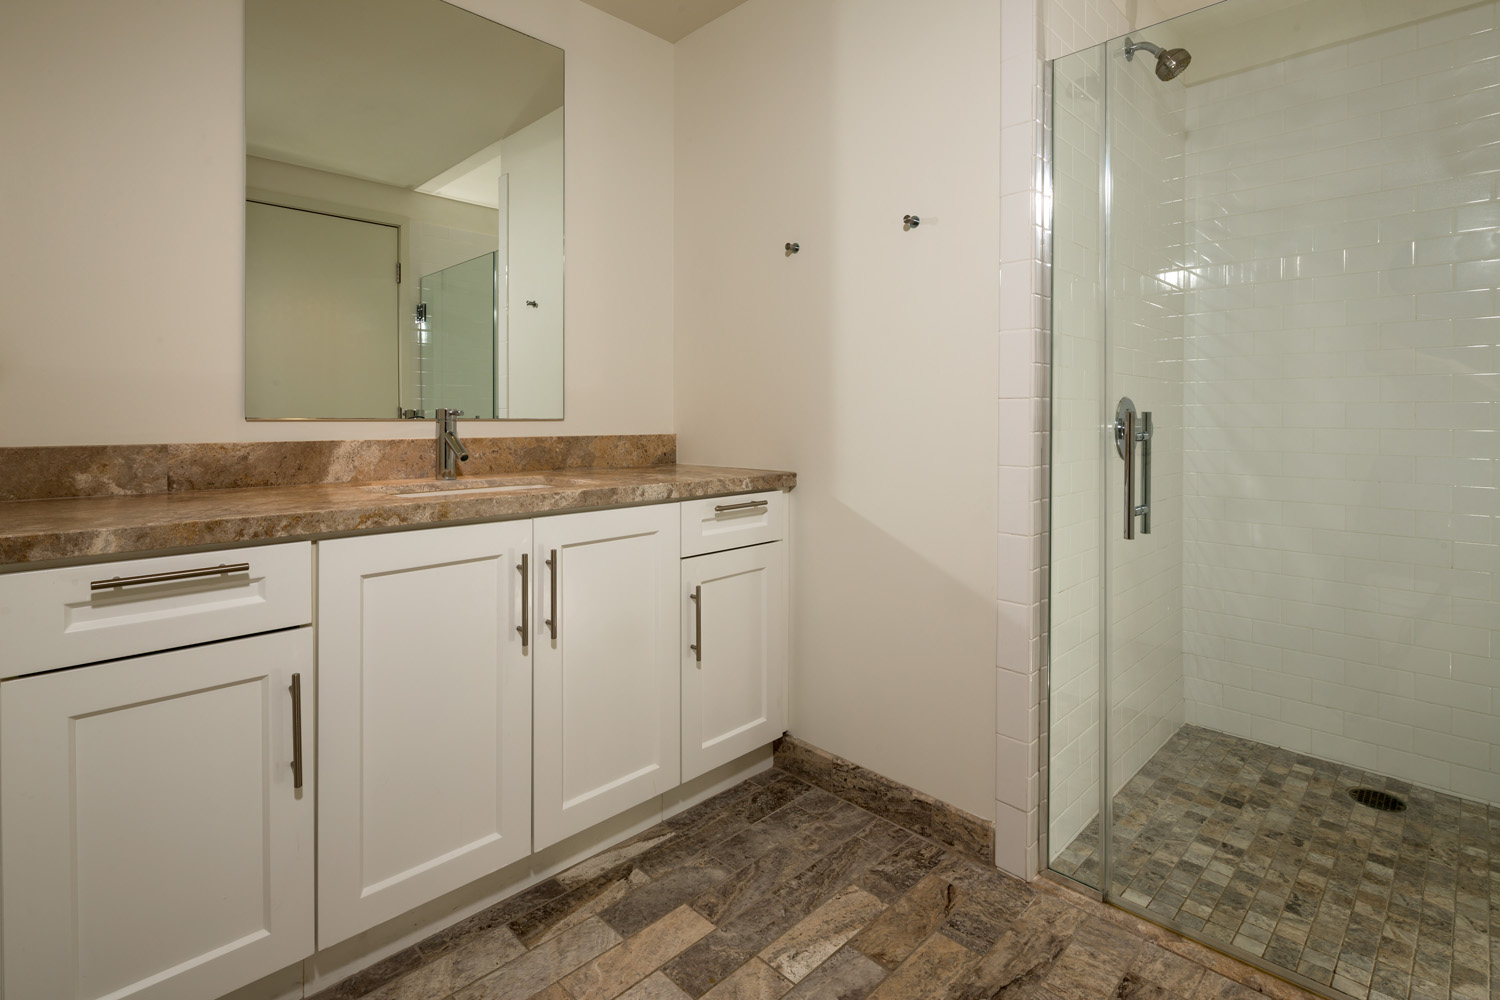 Watermarke Tower bathroom space of 1 bedroom 1 bath unit in Downtown Los Angeles